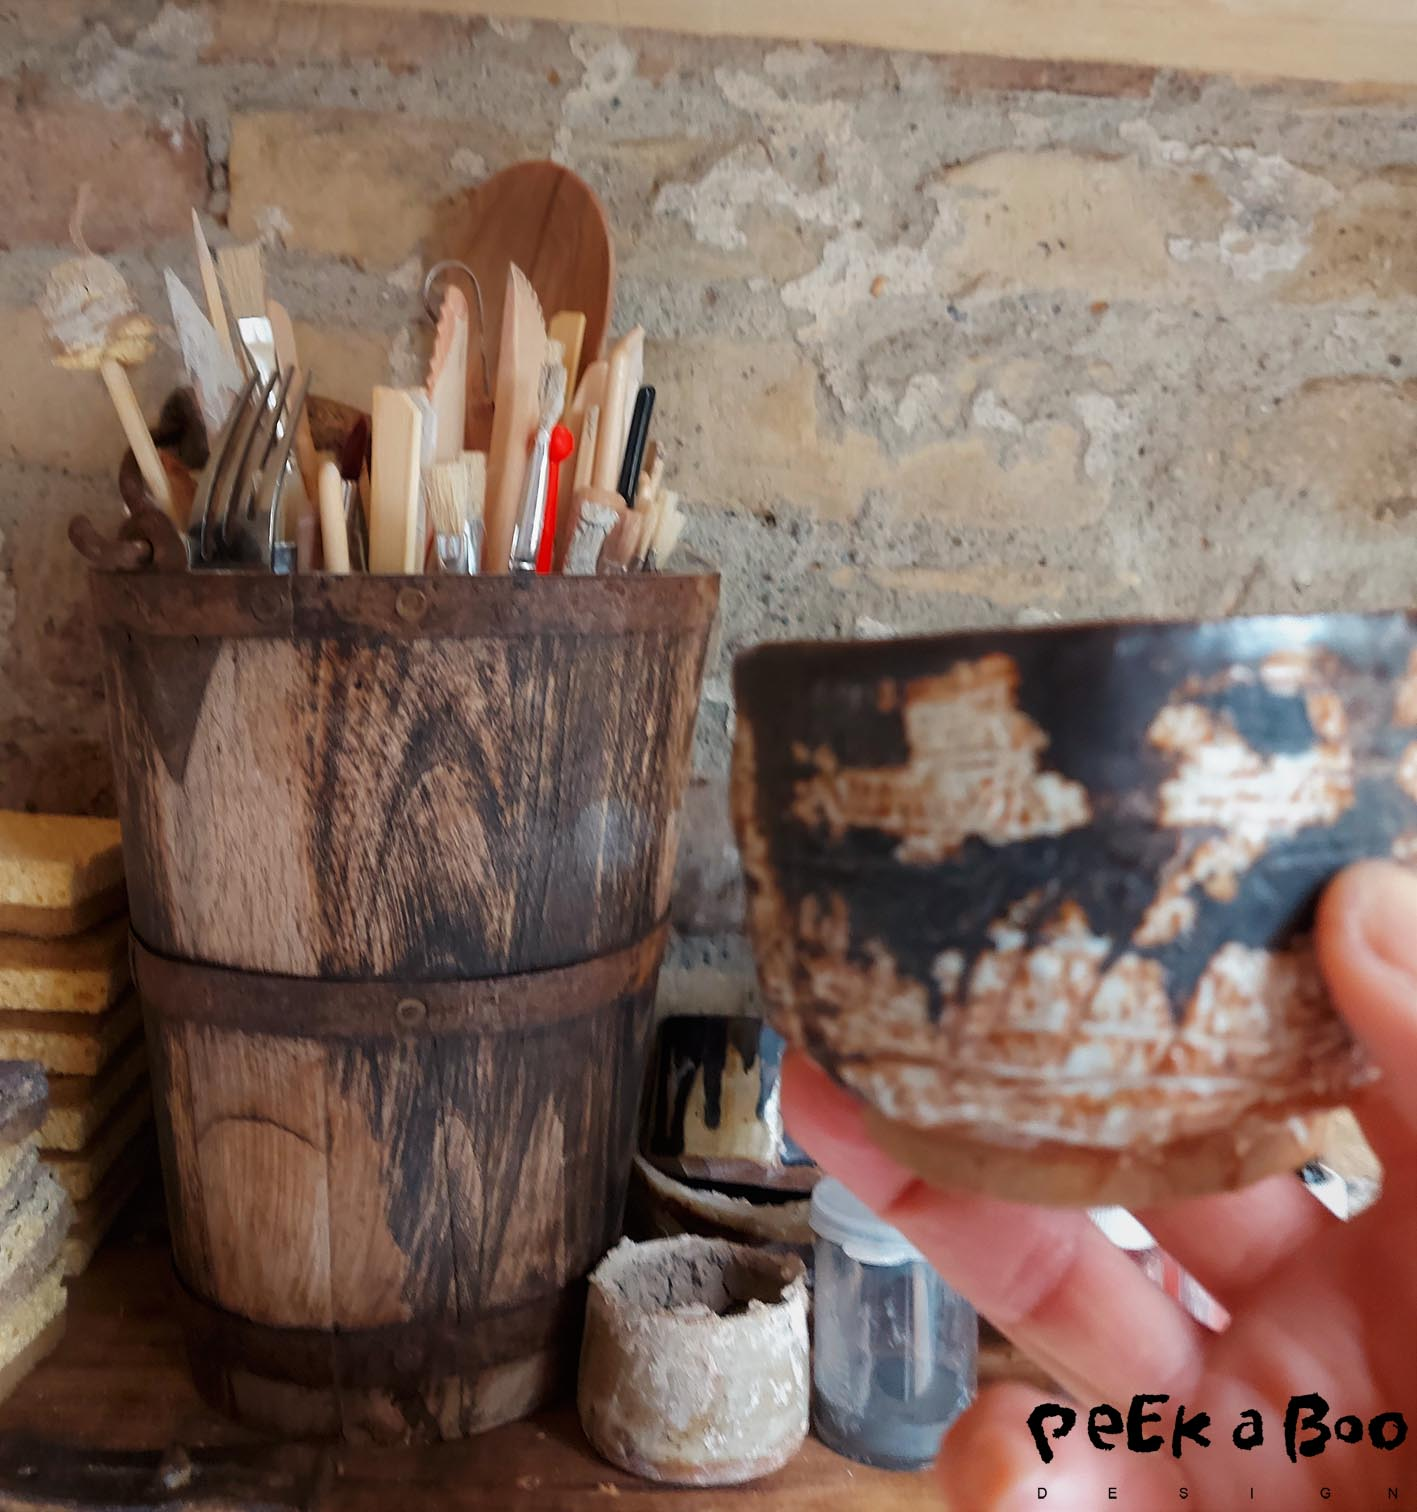 The tools for making the ceramic and my favorite cup.